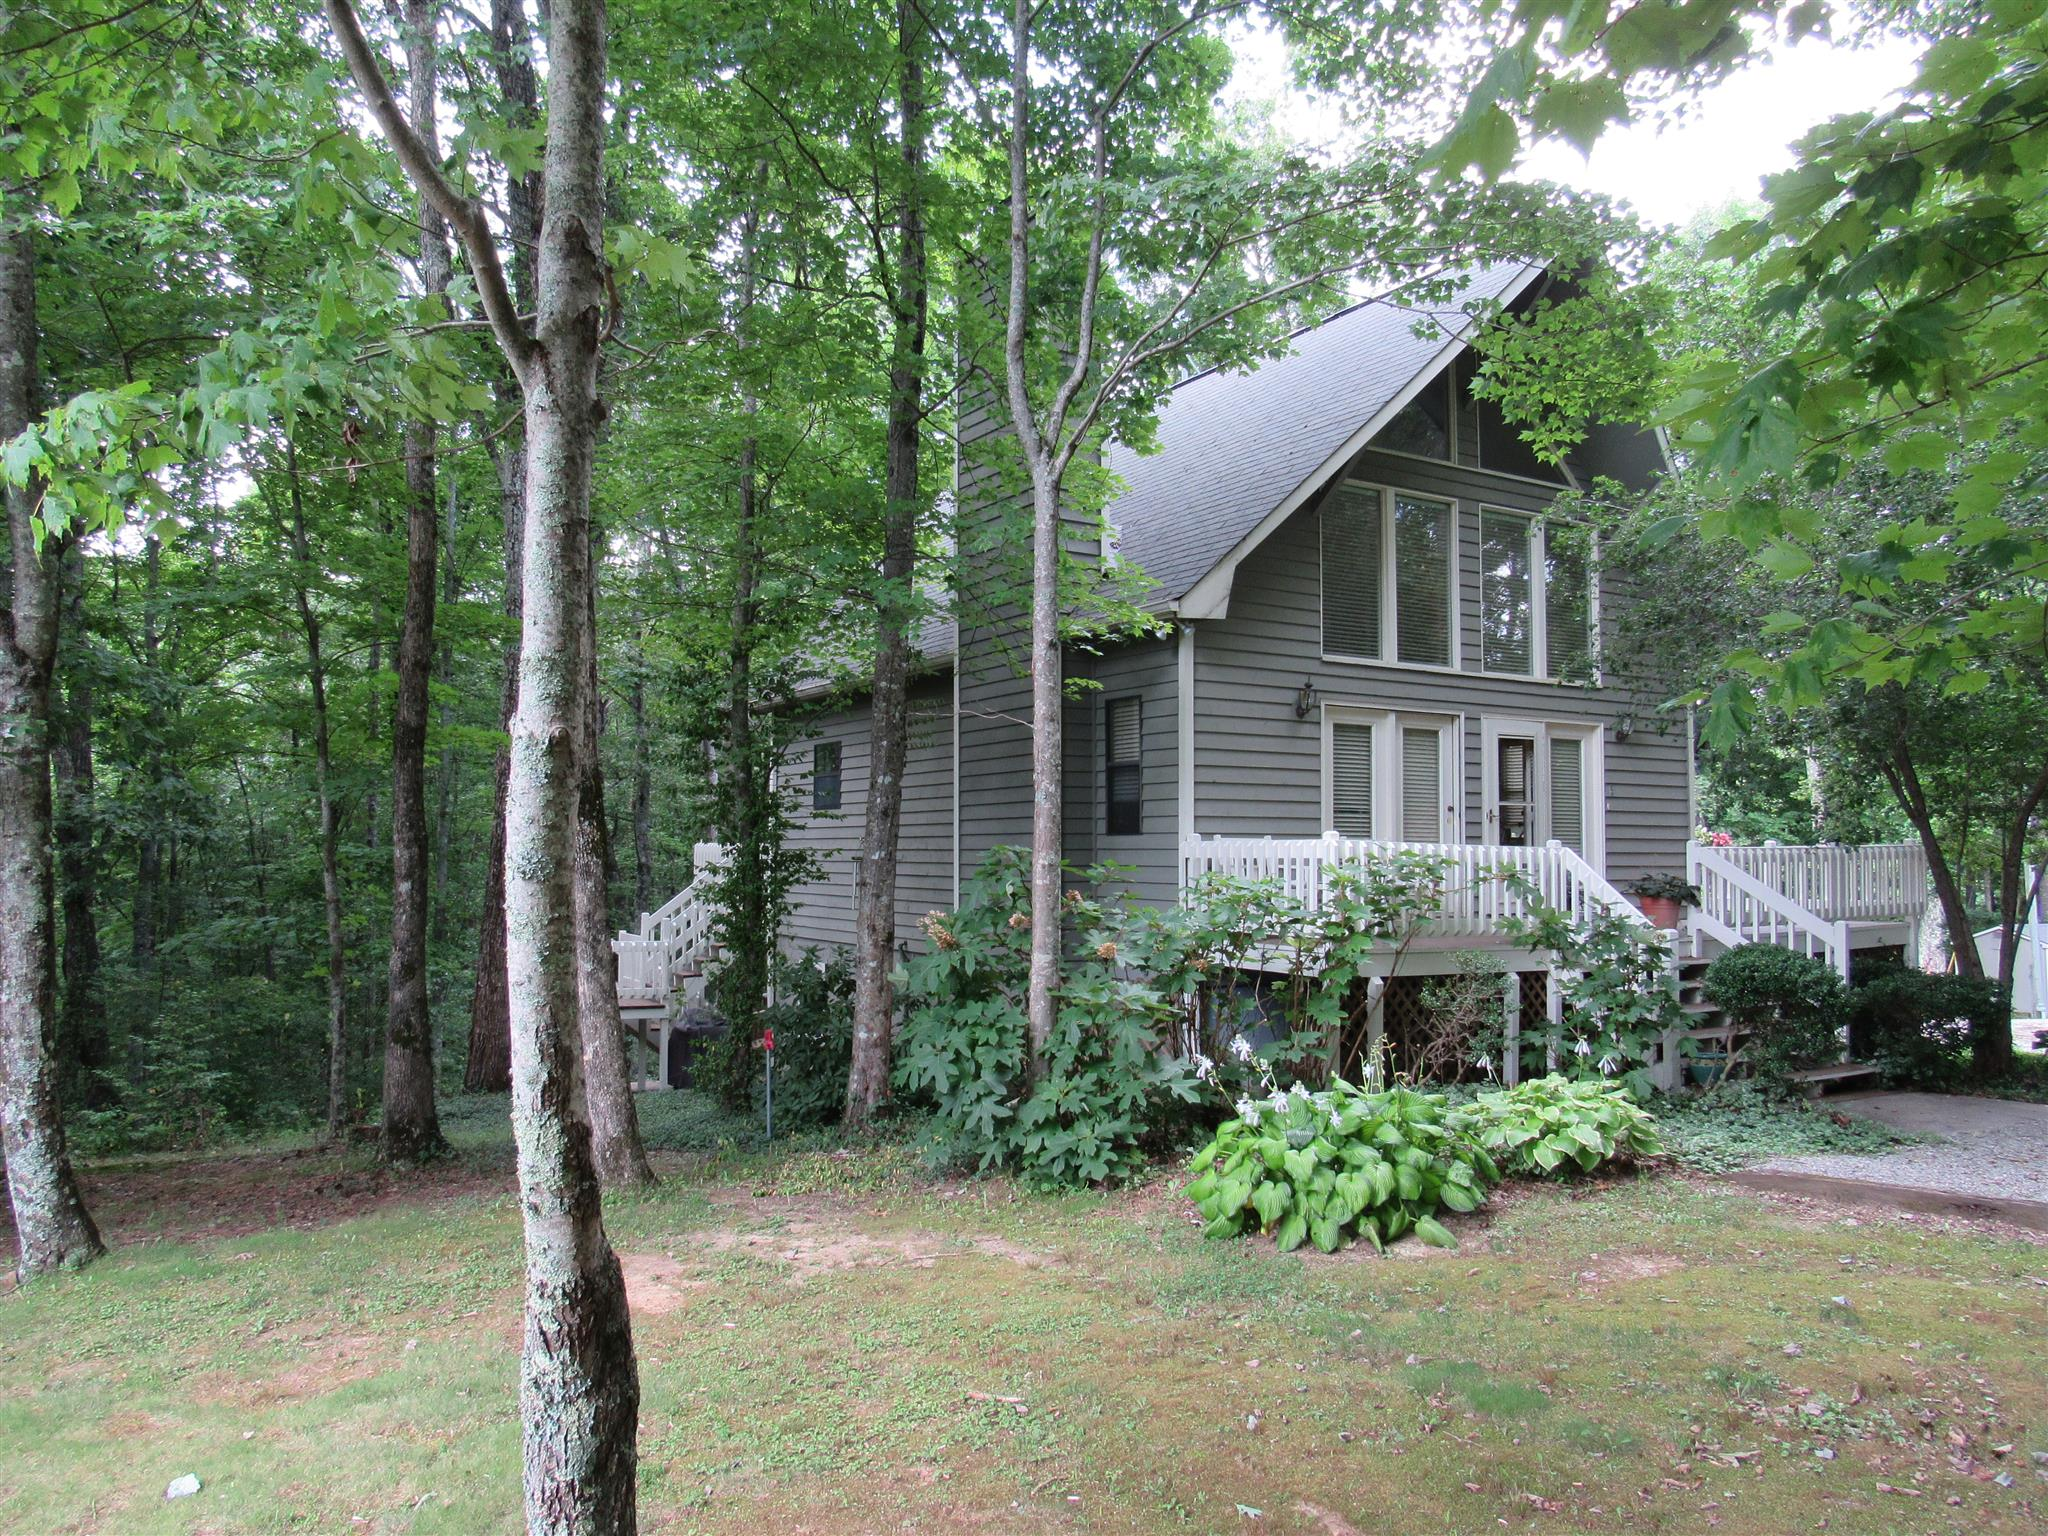 63 Woods Dr, Monterey, TN 38574 - Monterey, TN real estate listing